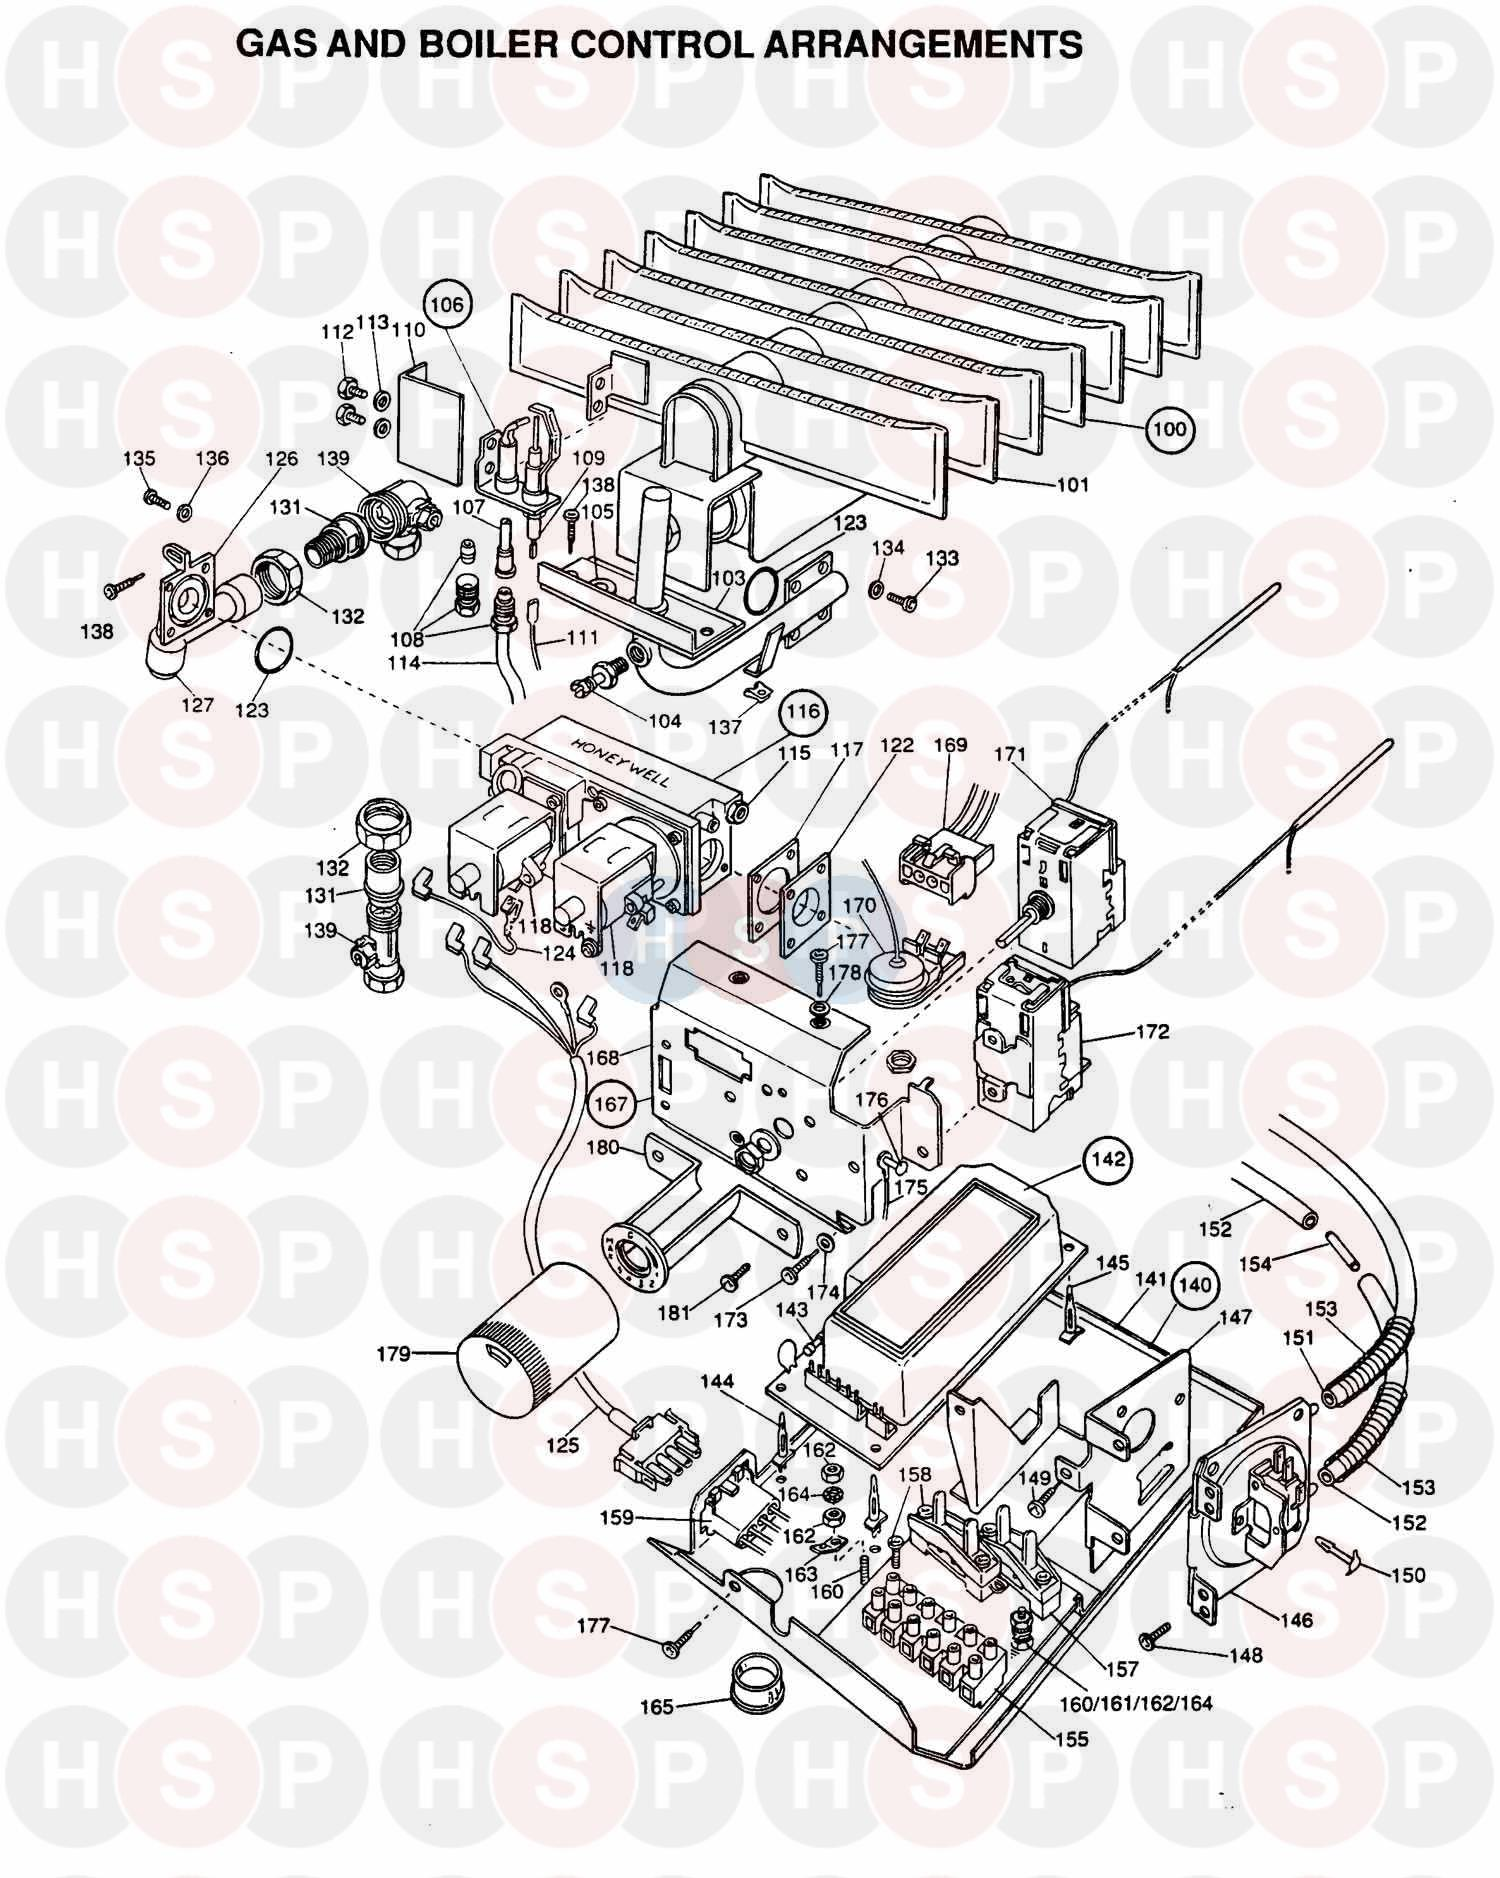 Potterton CELSIA 50 F1 (Gas & Boiler Controls) Diagram